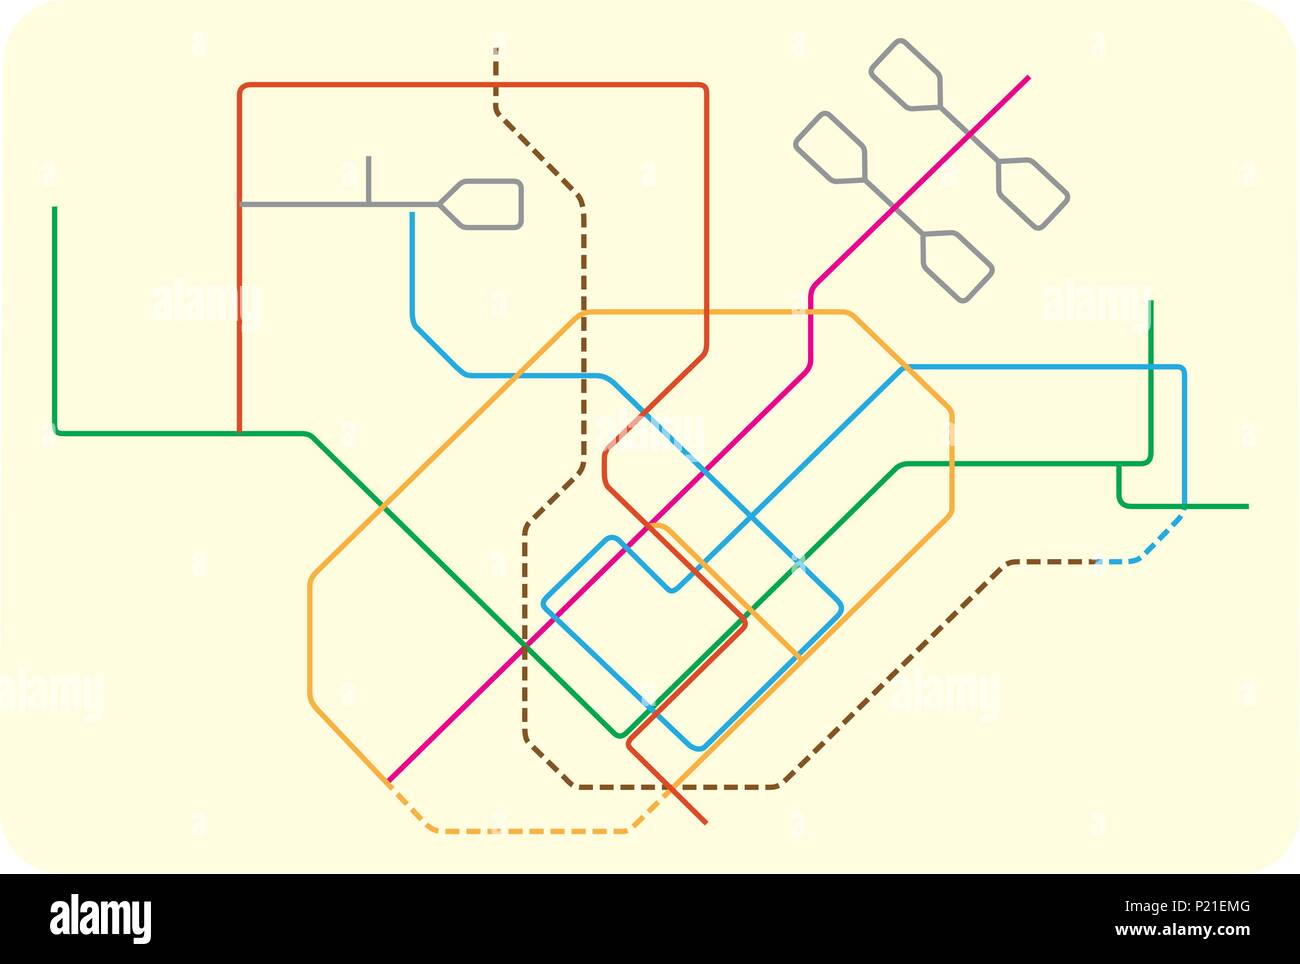 colored subway vector map of Singapore, asia - Stock Image